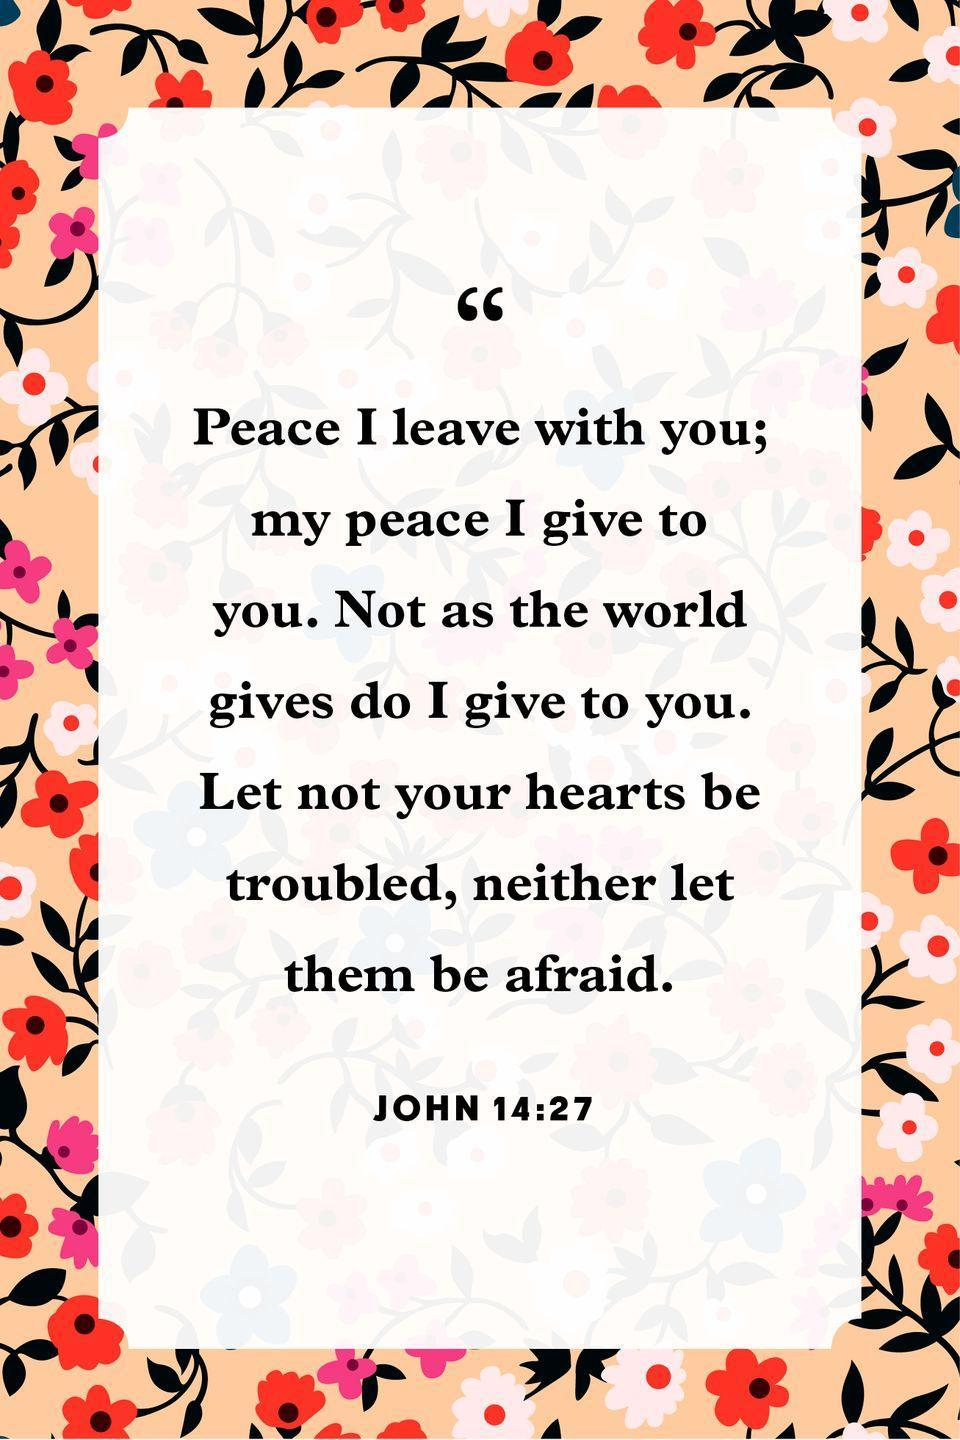 "<p>""Peace I leave with you; my peace I give to you. Not as the world gives do I give to you. Let not your hearts be troubled, neither let them be afraid.""</p>"